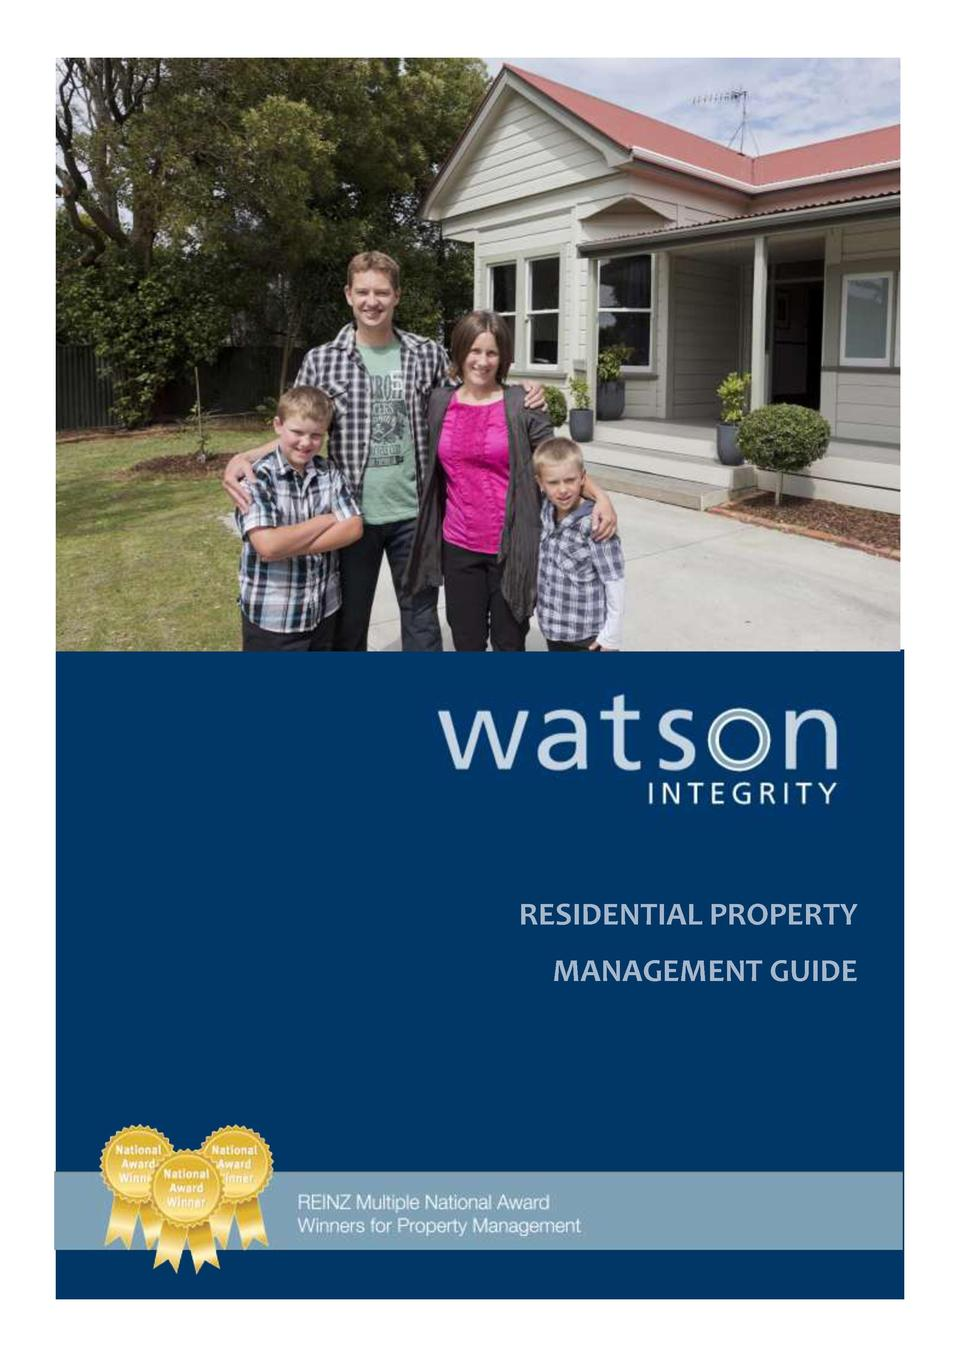 RESIDENTIAL PROPERTY MANAGEMENT GUIDE